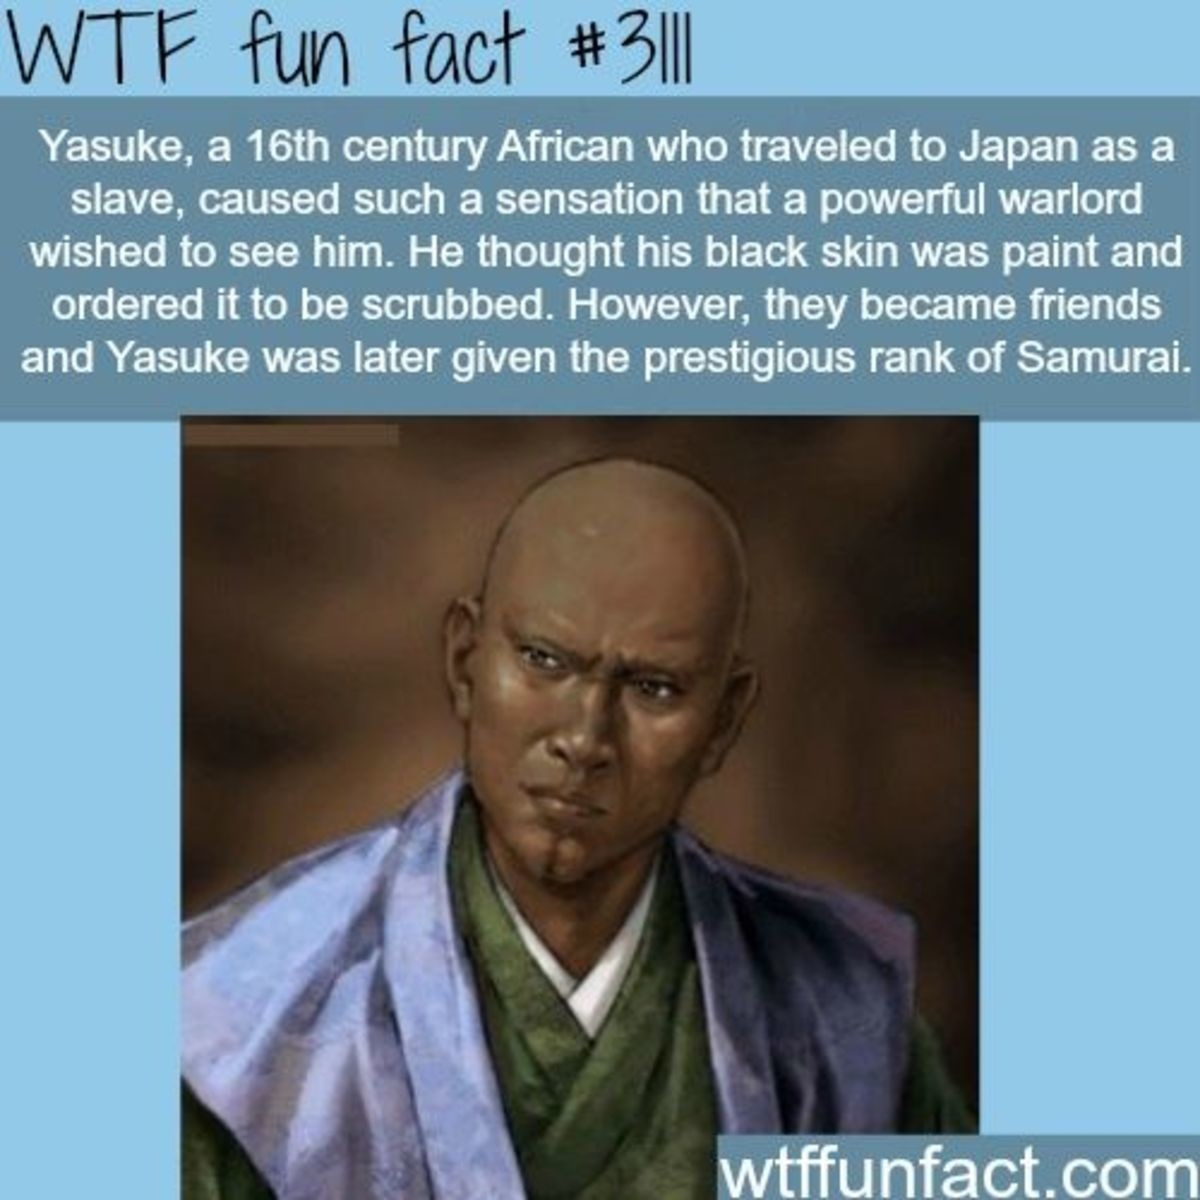 Afro Smaurai. .. He didn't just serve under any warlord, he served under Oda Nobunaga.